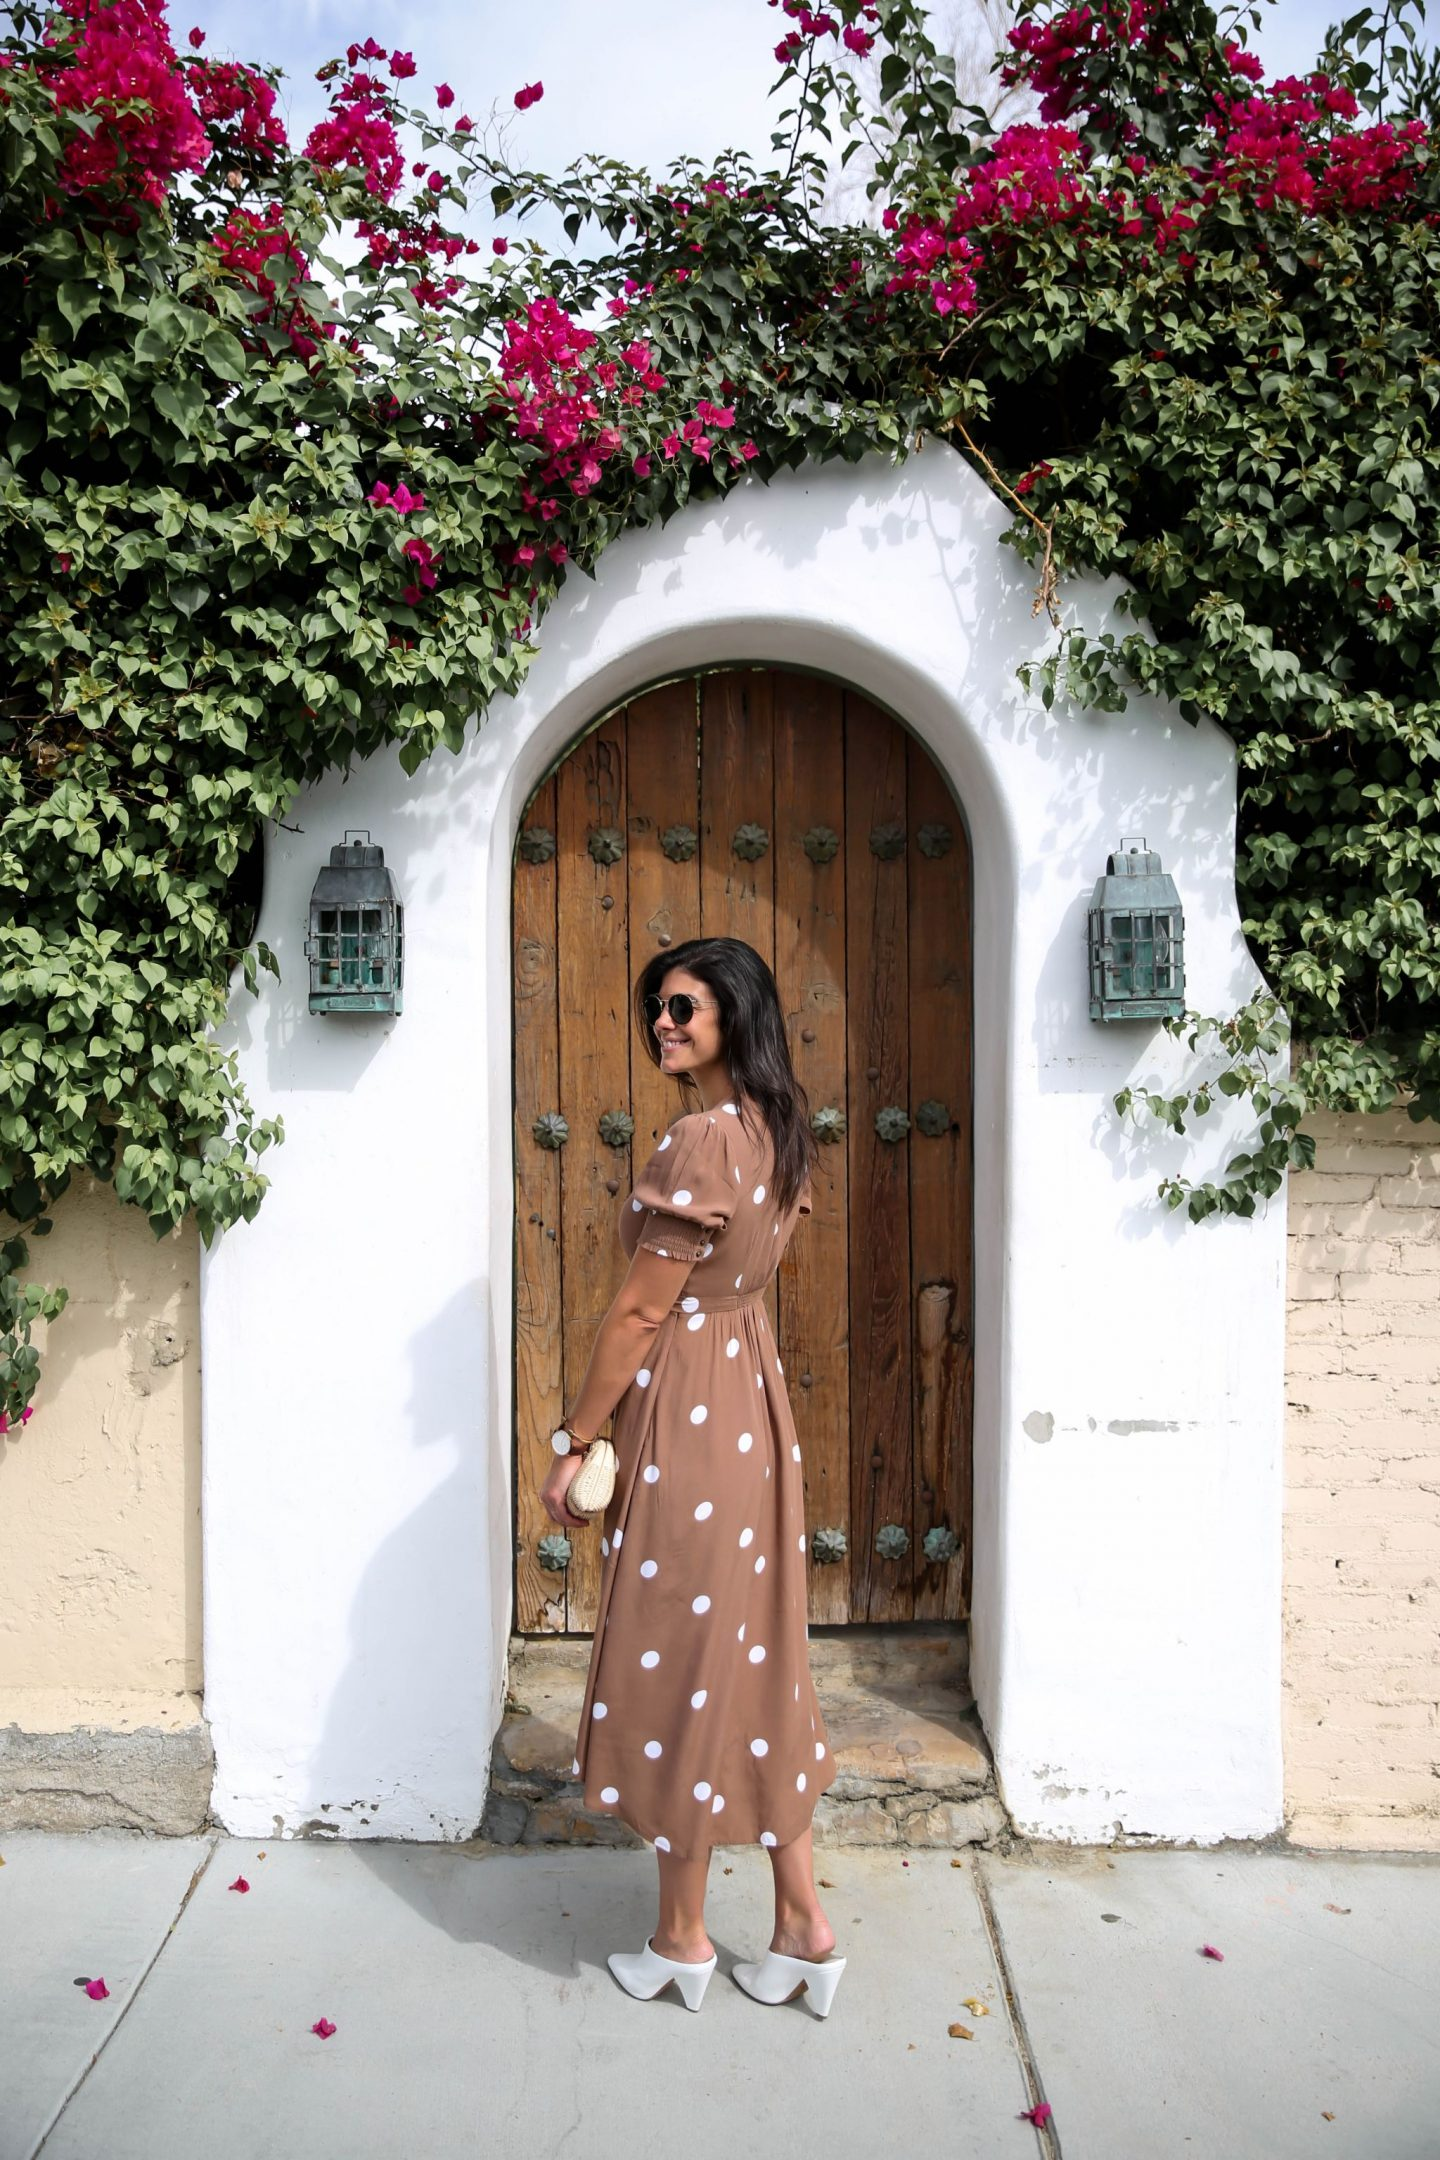 Brow White Polka Dot Dress - Palm Springs - Lauren Schwaiger Style Blog